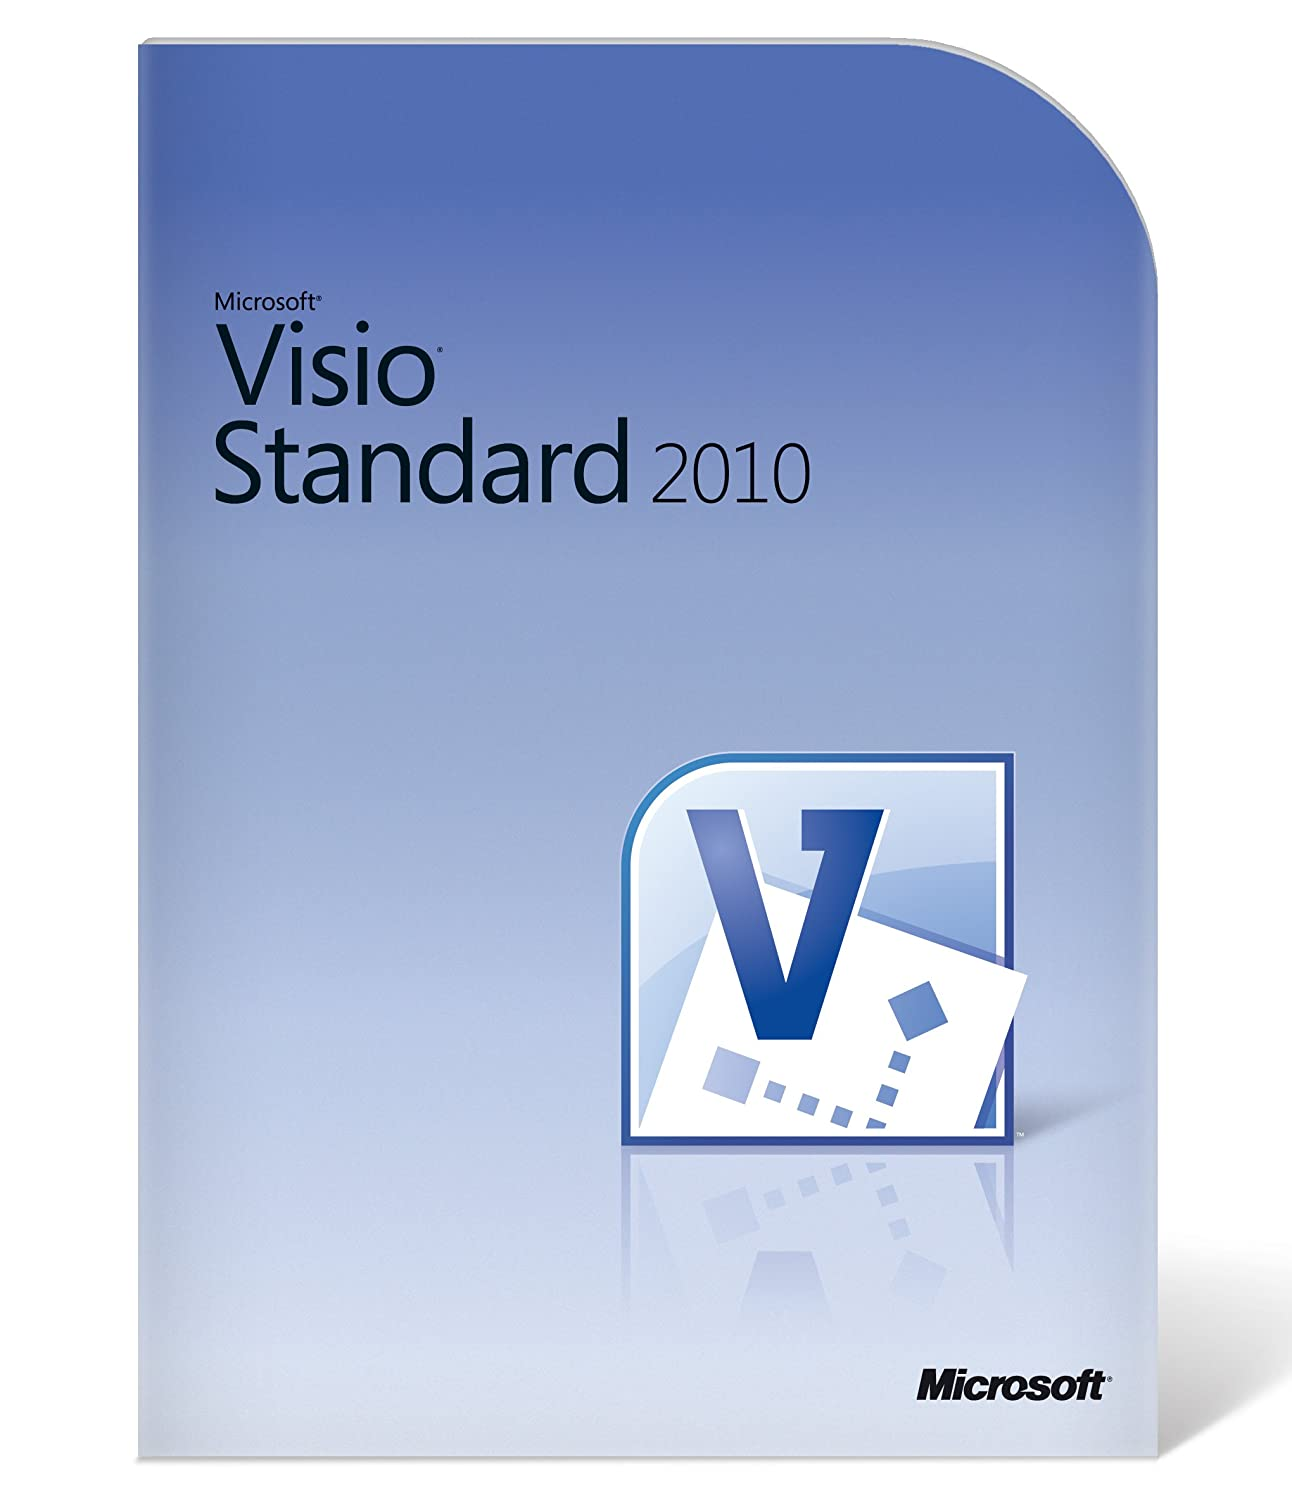 amazoncom microsoft visio standard 2010 software - Visio 2010 For Mac